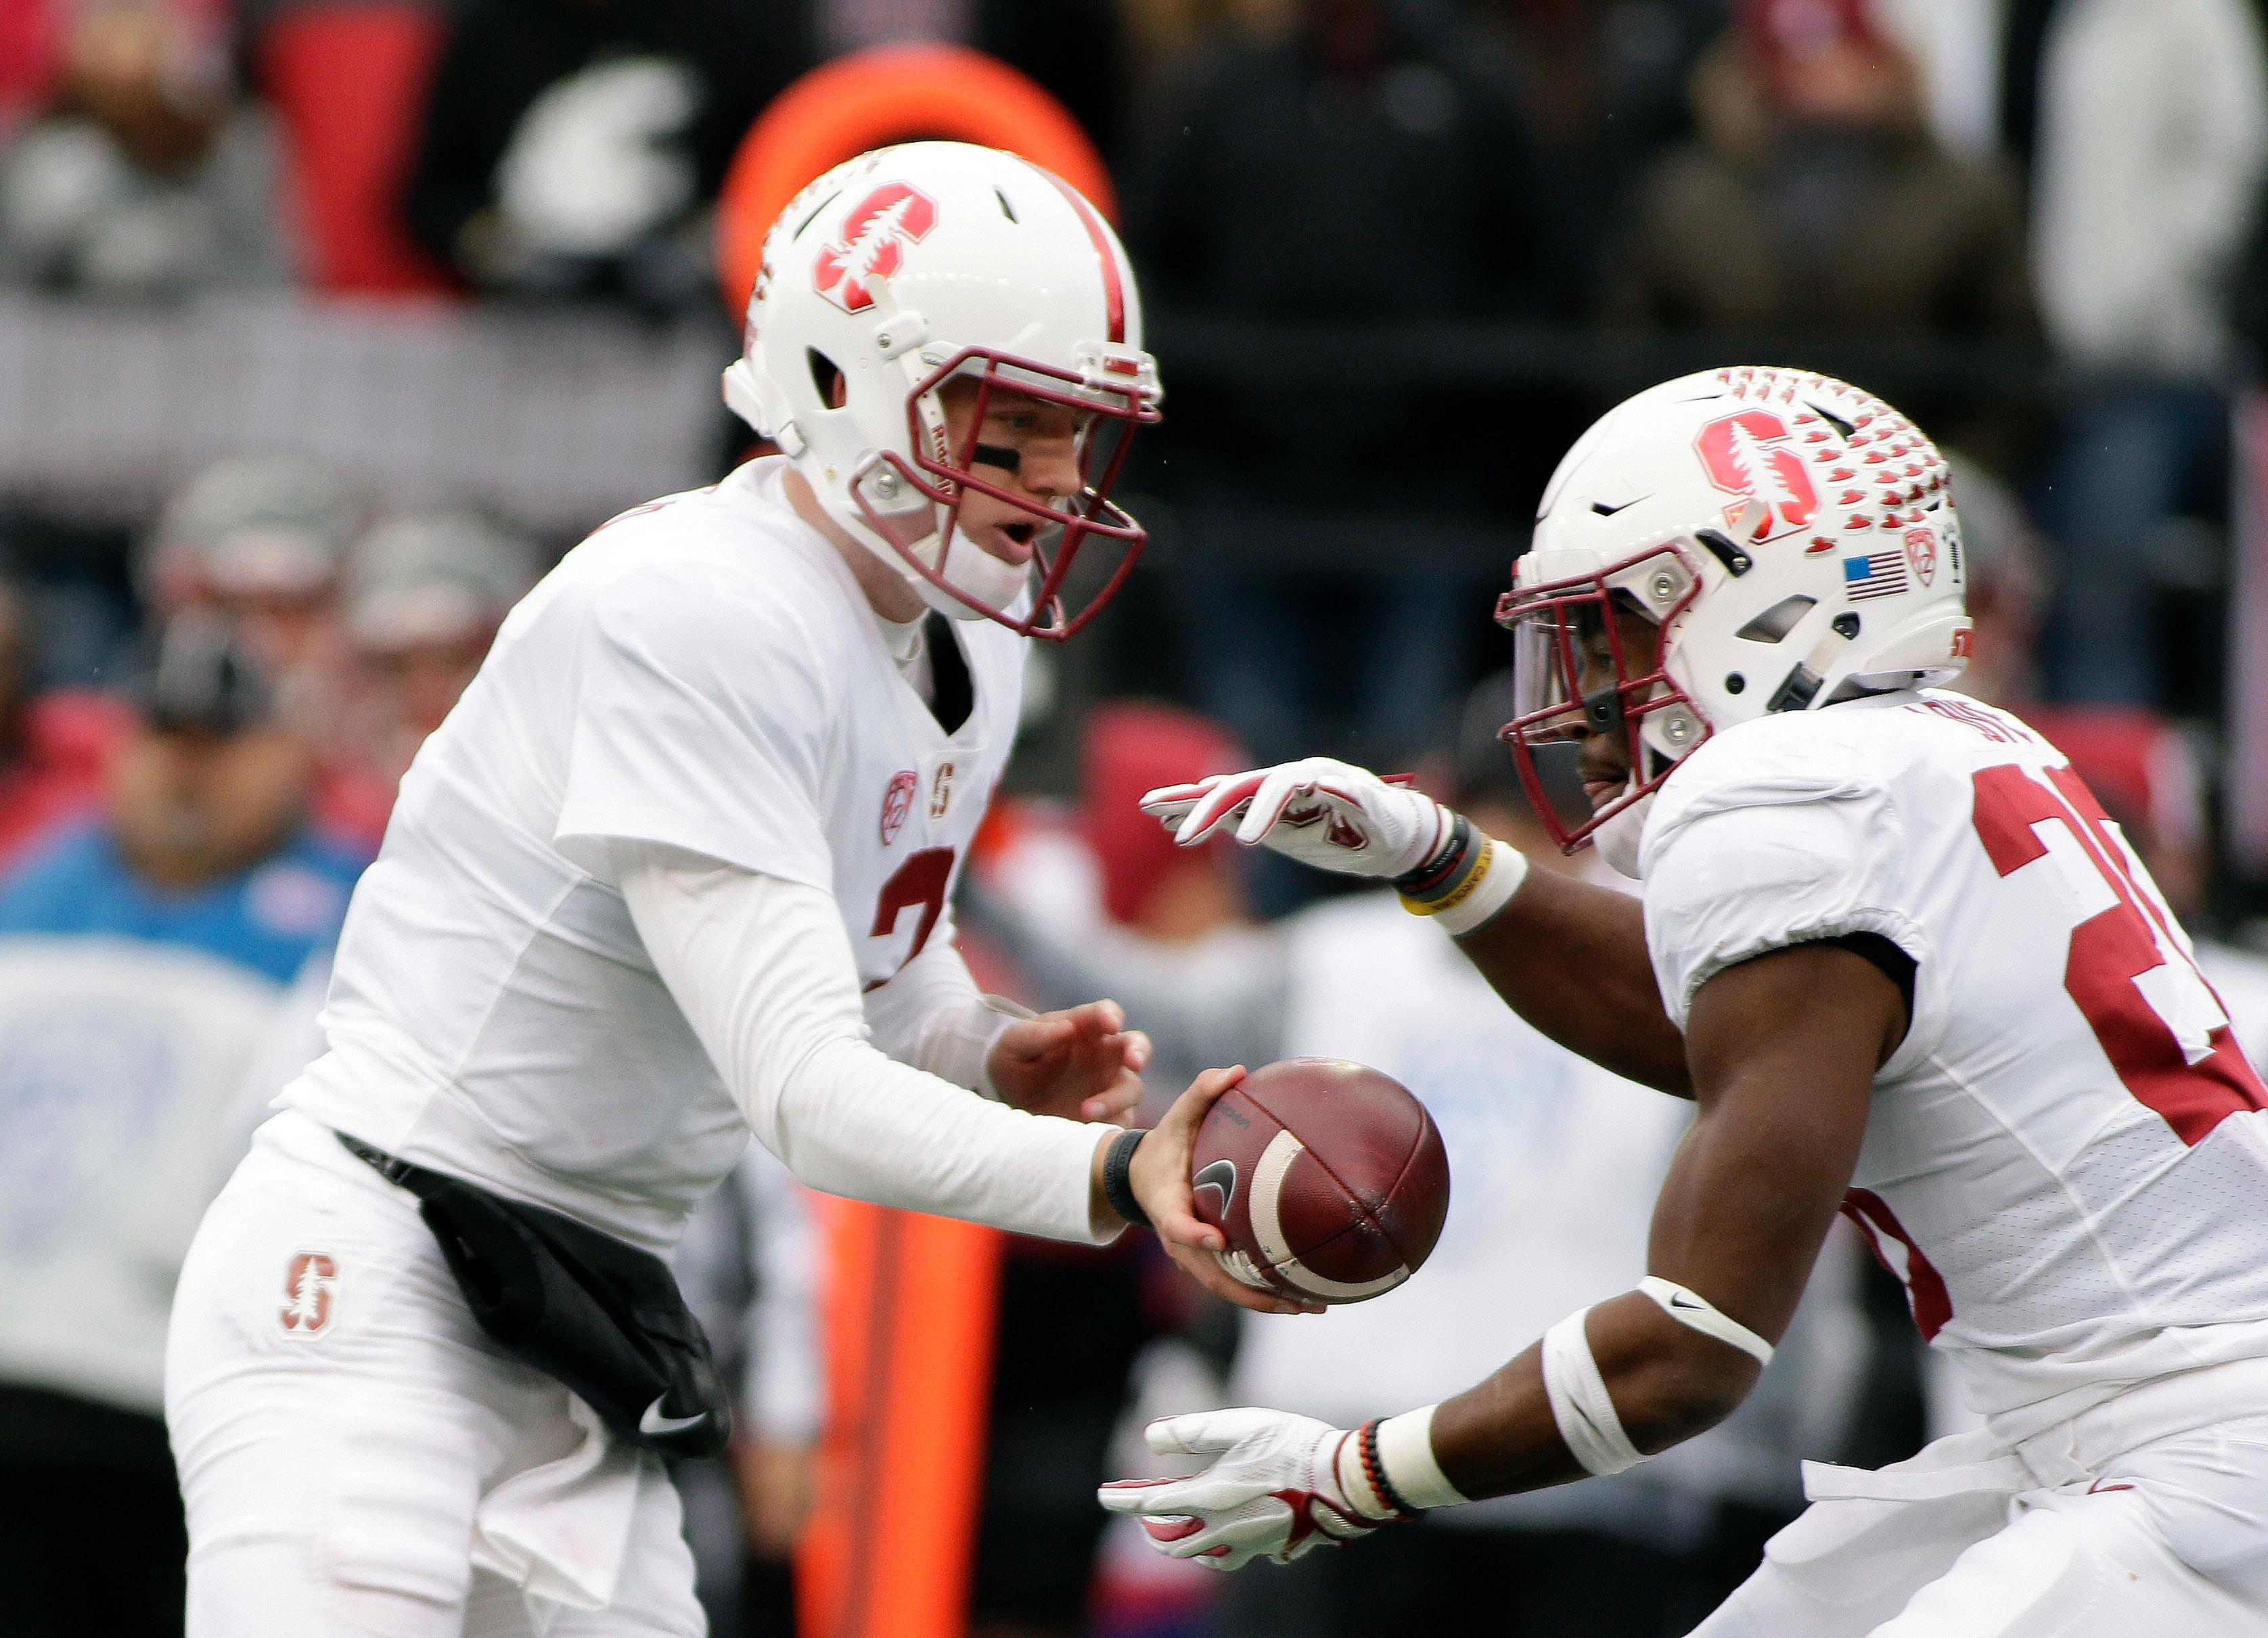 Stanford quarterback K.J. Costello, left, hands the ball off to running back Bryce Love during the first half of an NCAA college football game against Washington State in Pullman, Wash., Saturday, Nov. 4, 2017. (AP Photo/Young Kwak)